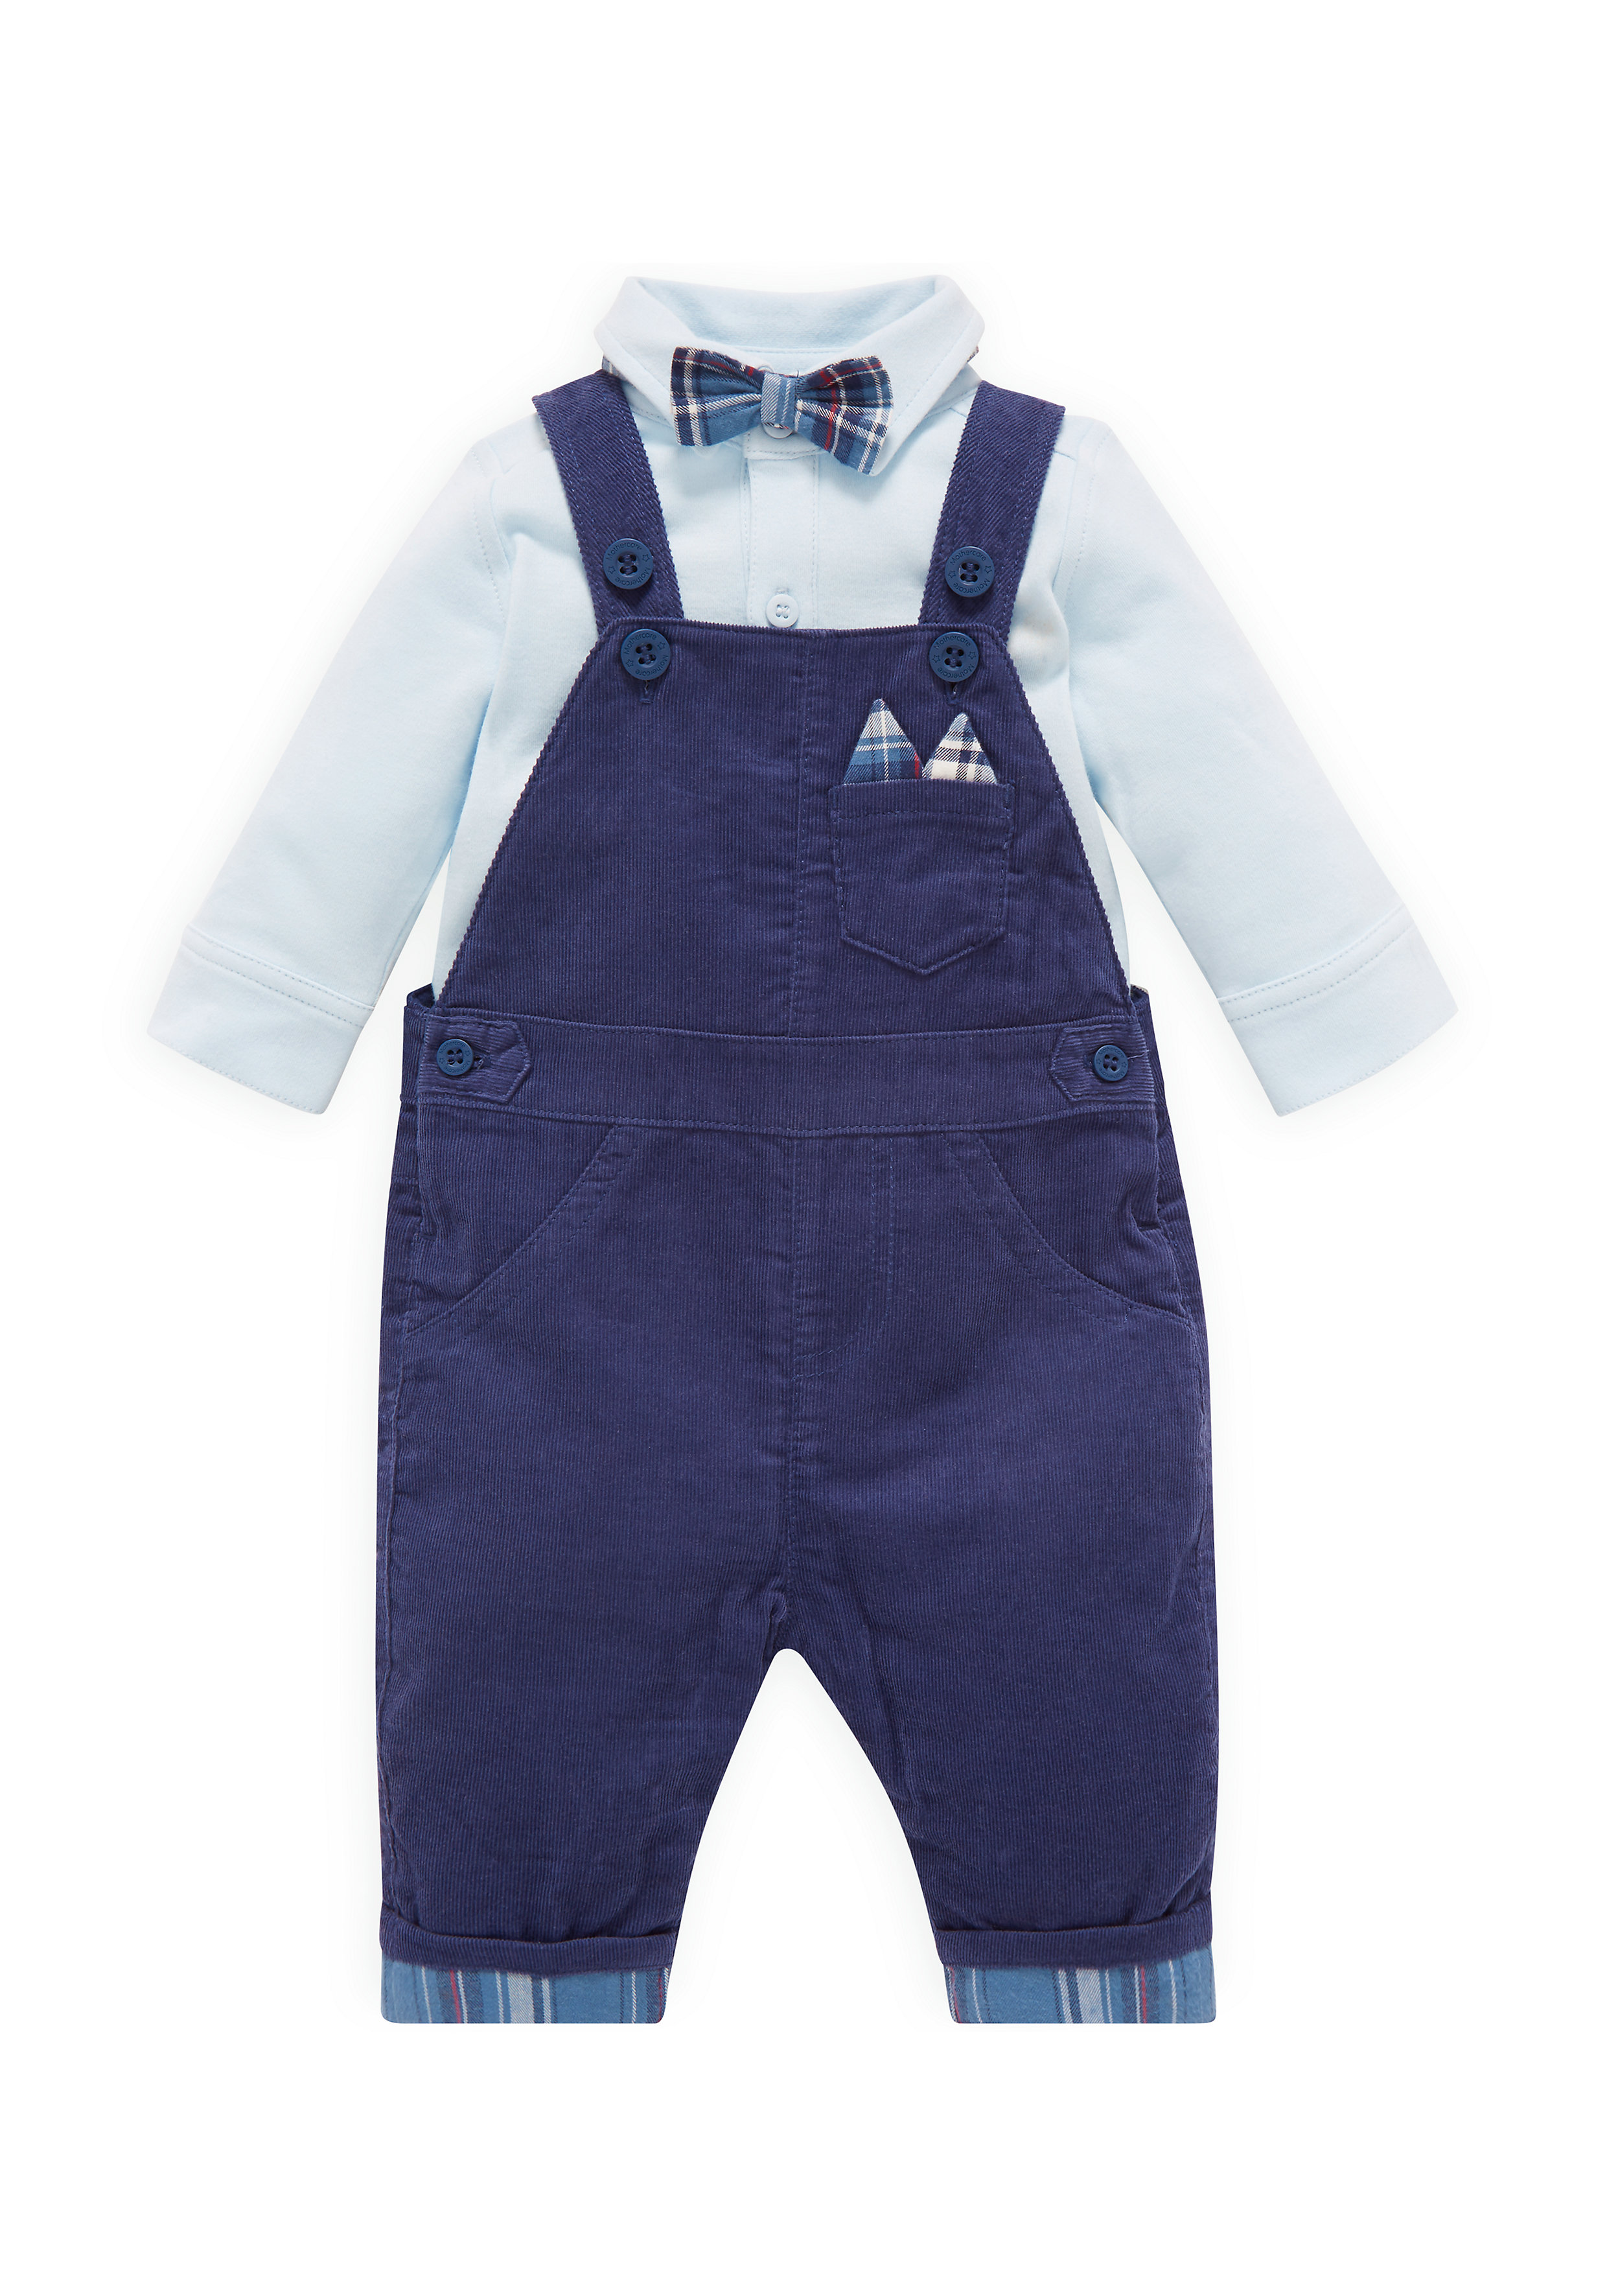 Mothercare | Boys Full Sleeves Cord Dungaree Set With Bow Tie - Navy